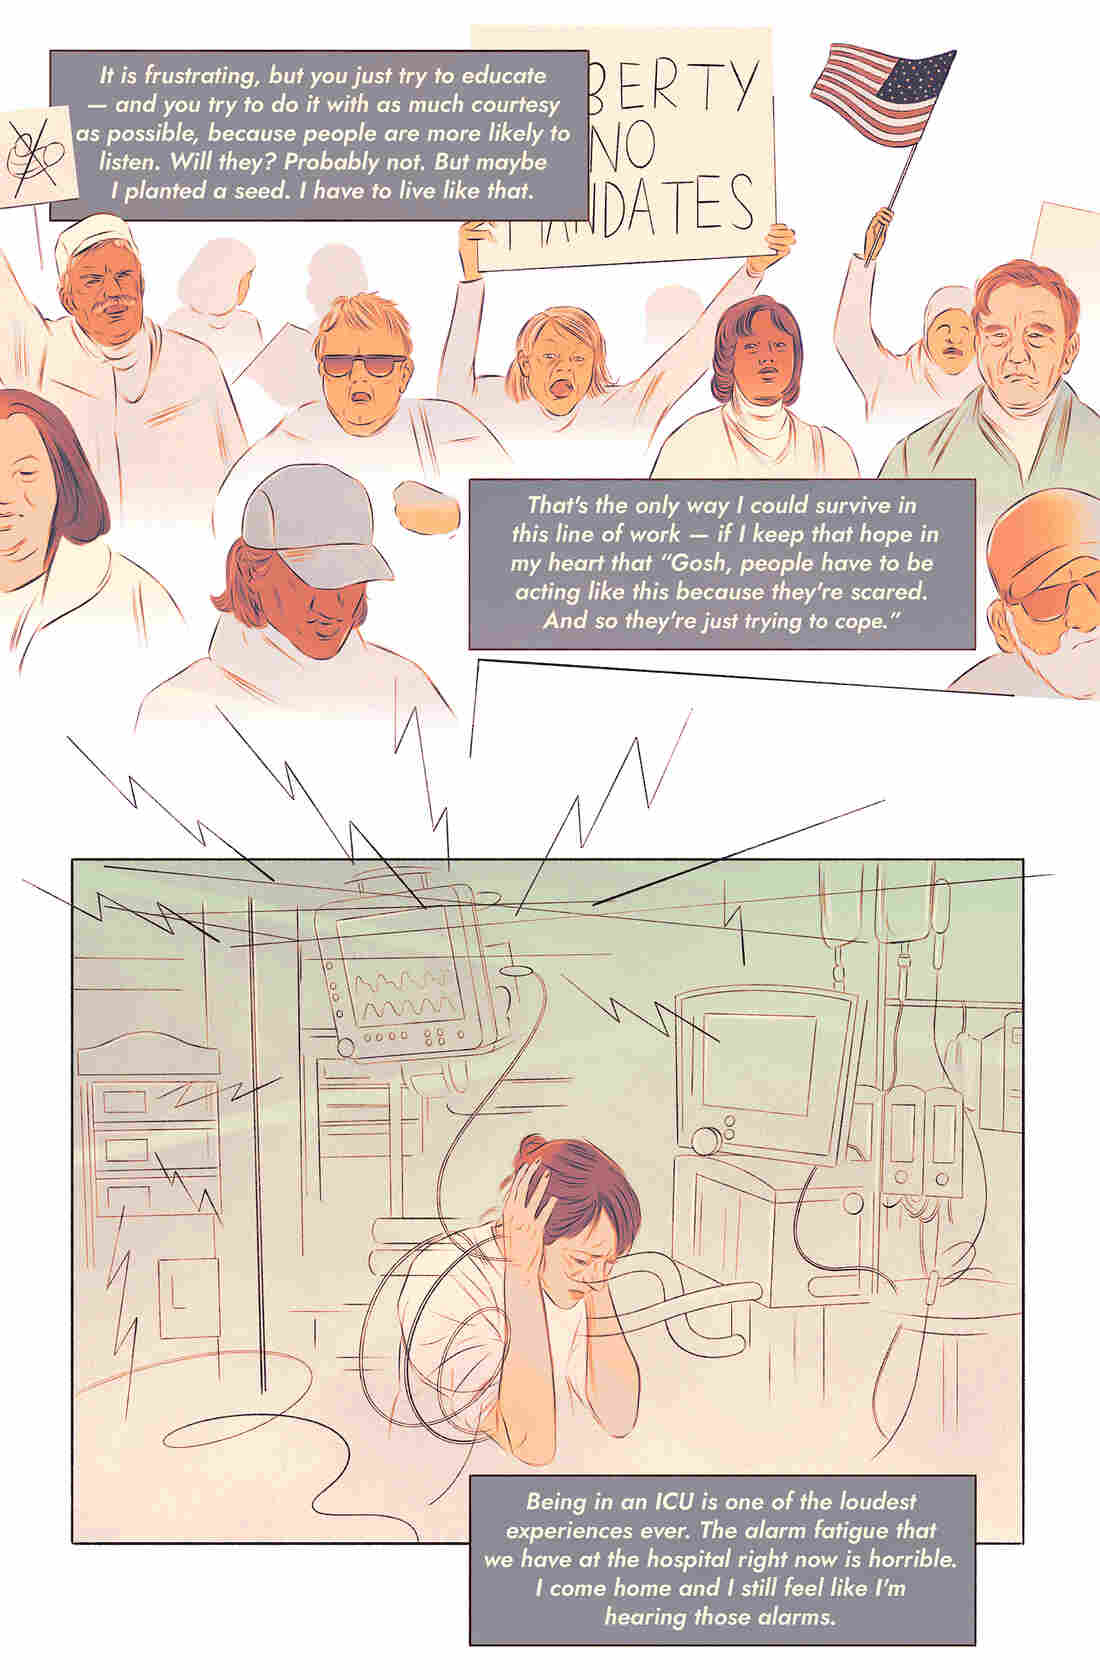 Agnes Boisvert, an ICU nurse at St. Luke's hospital in downtown Boise, Idaho, spends every day trying to navigate between two worlds. One is a swirl of beeping monitors, masked emotion and death; the other, she says, seems oblivious to the horrors occurring every hour of every day. Illustrated by Isabel Seliger.